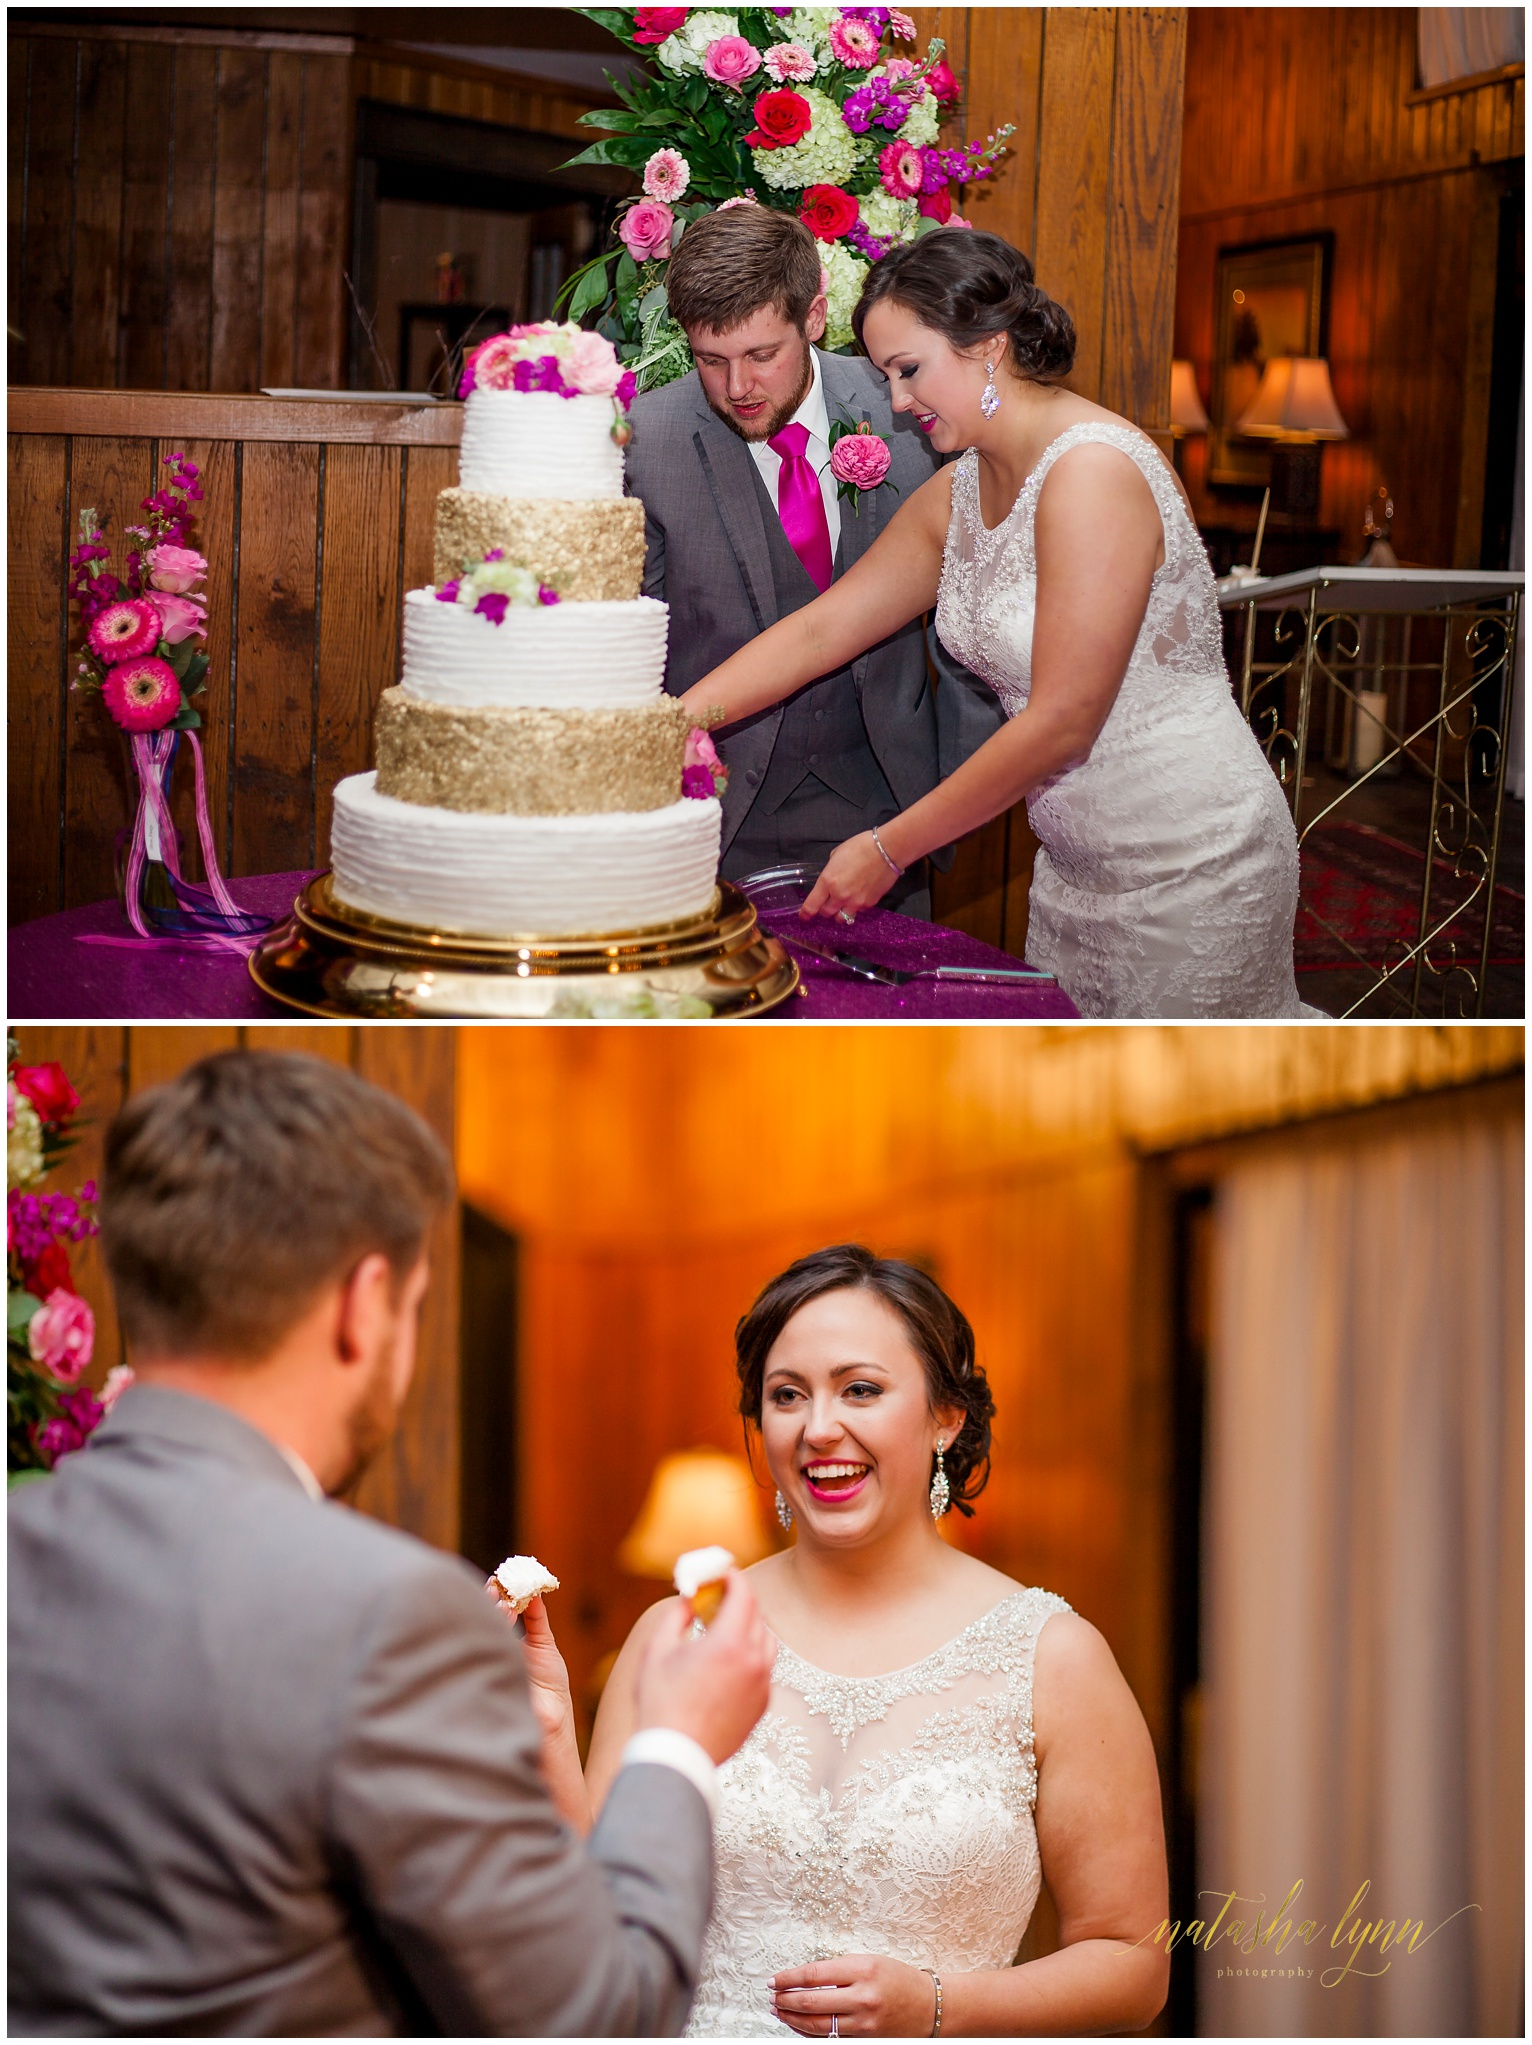 High+Point+Wedding+Photographer+Adaumont+Farm3.jpg